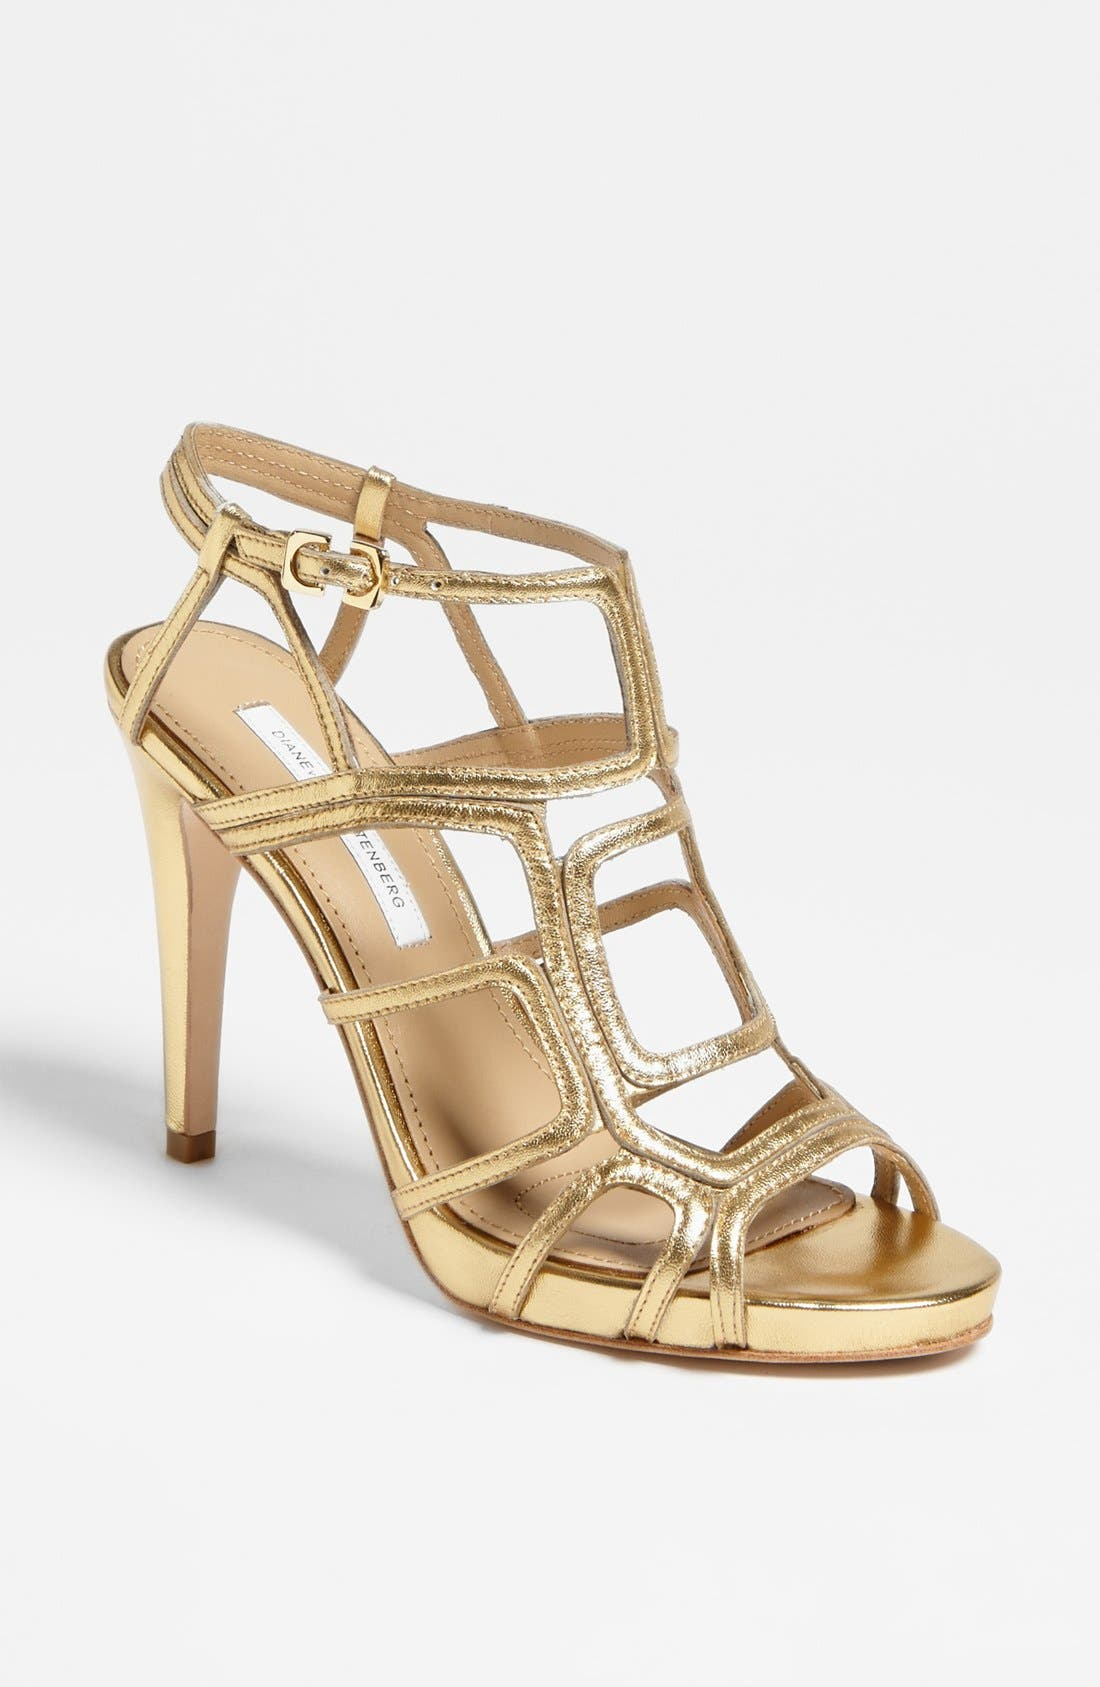 Alternate Image 1 Selected - Diane von Furstenberg 'Jeanette' Sandal (Online Only)